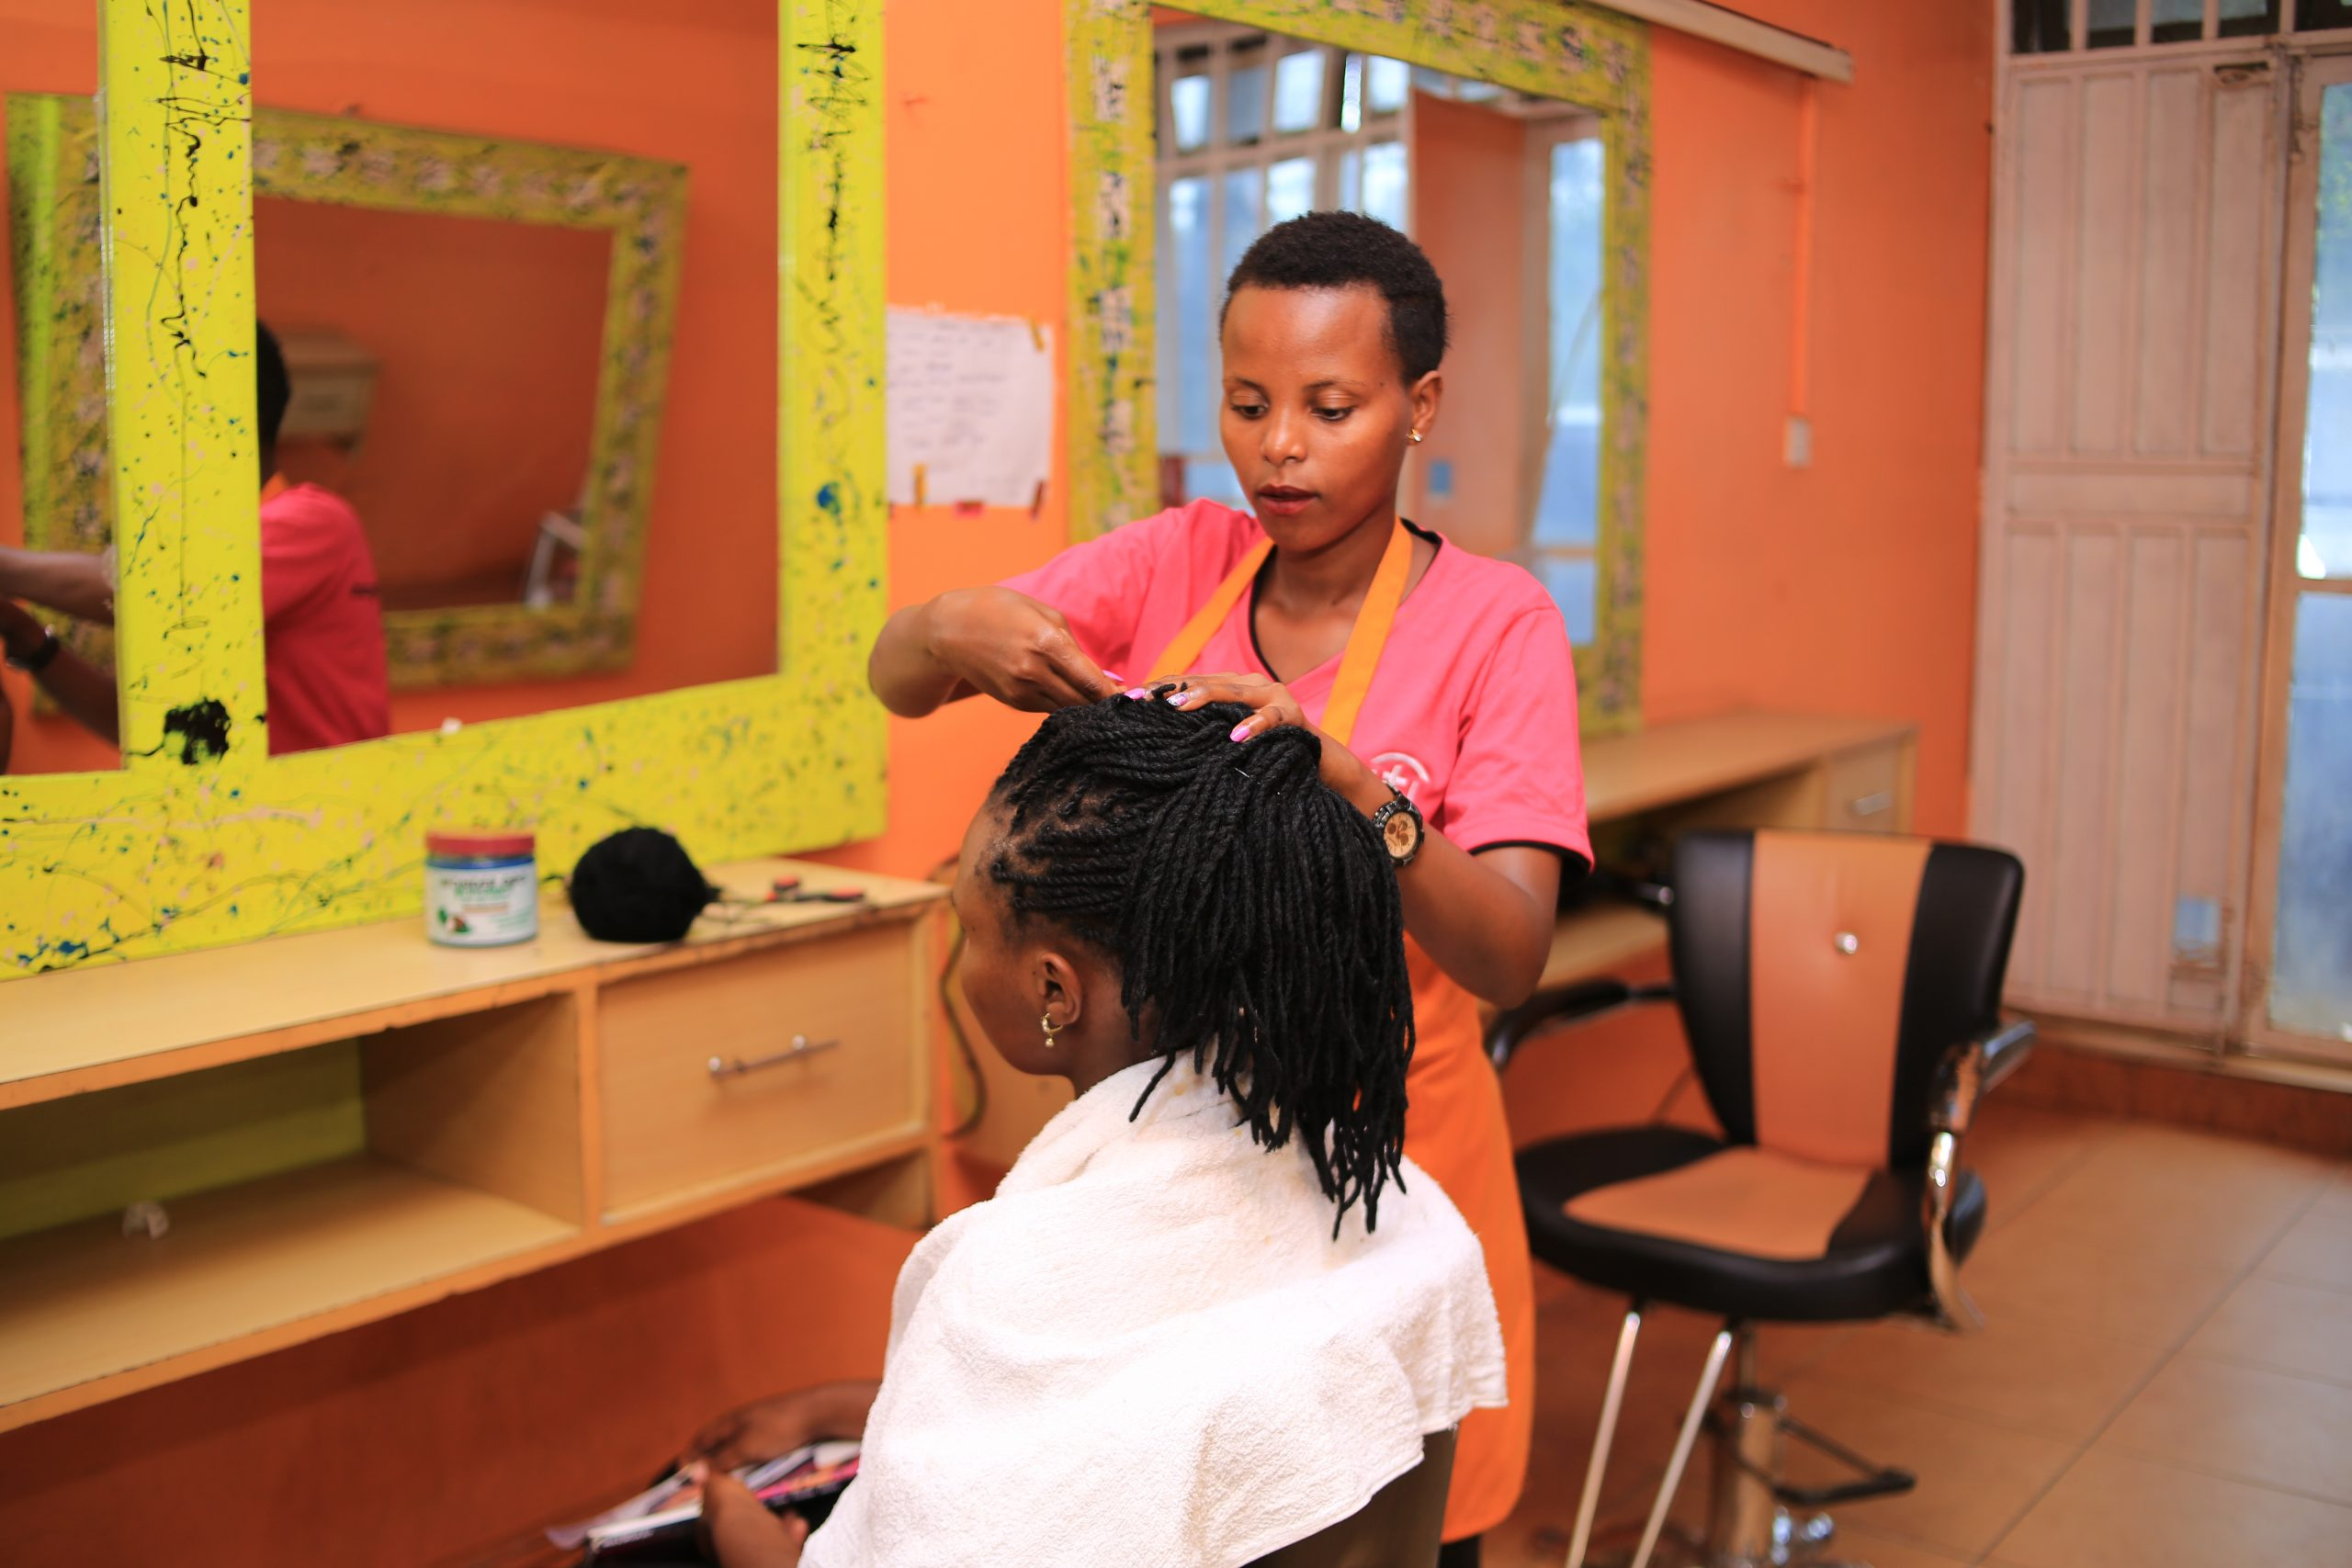 Carolyn works on a client in her salon business near Kampala, Uganda